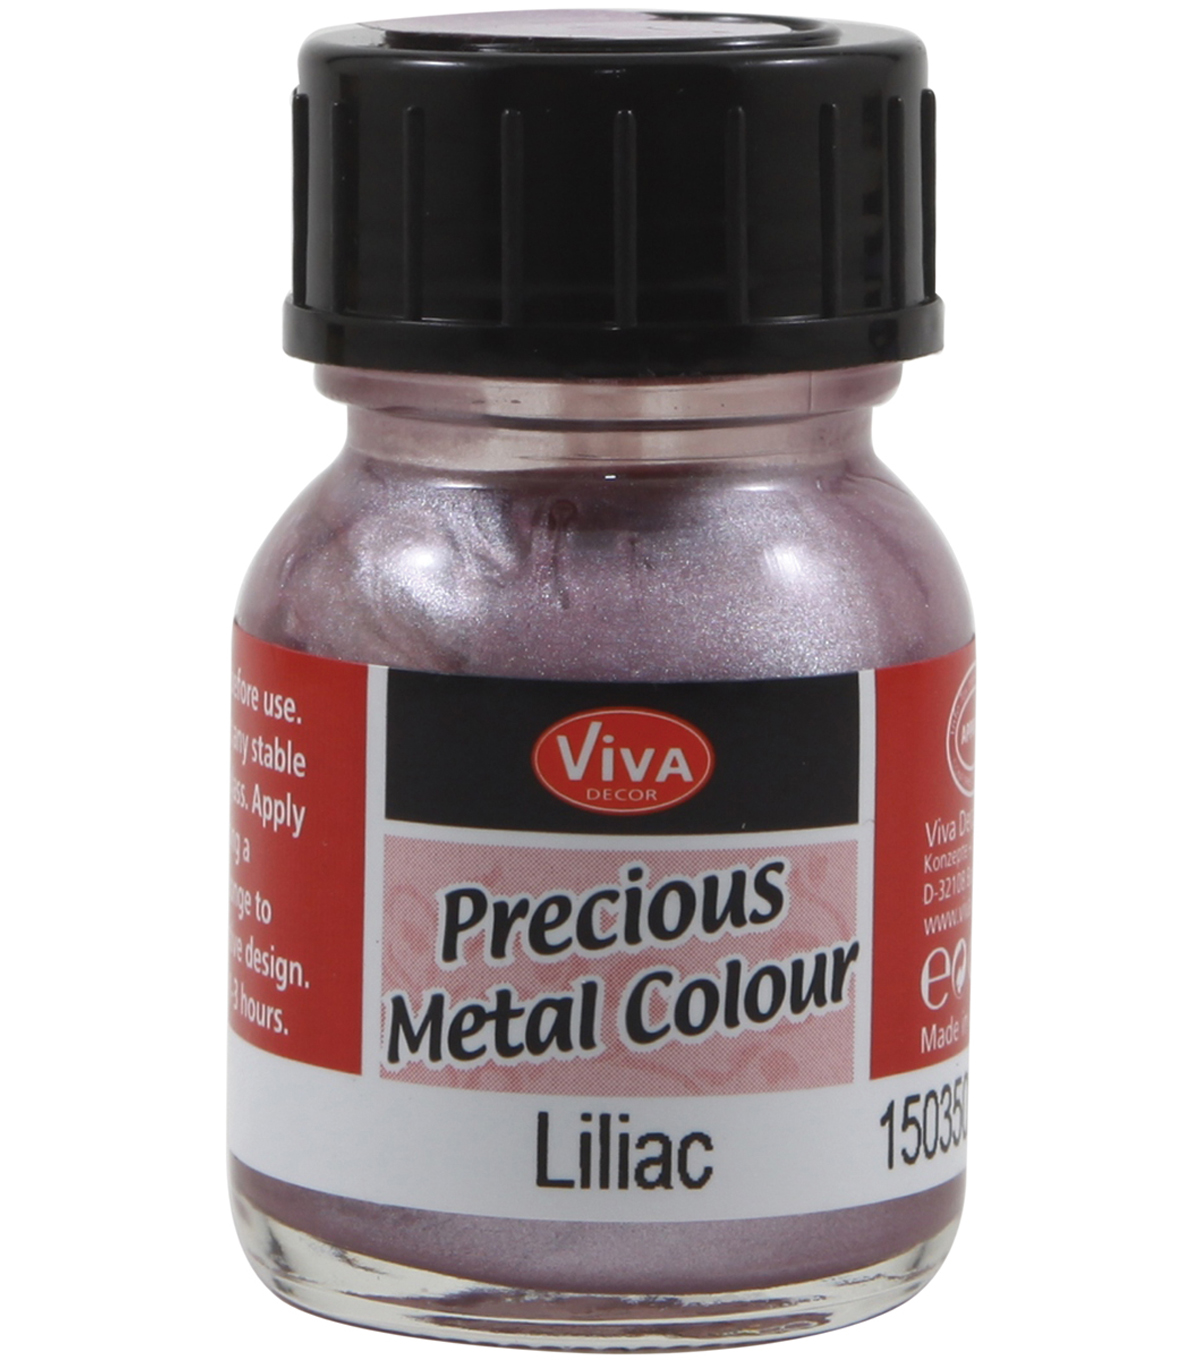 Viva Decor Precious Metal Color 25ml/Pkg-Ice Blue